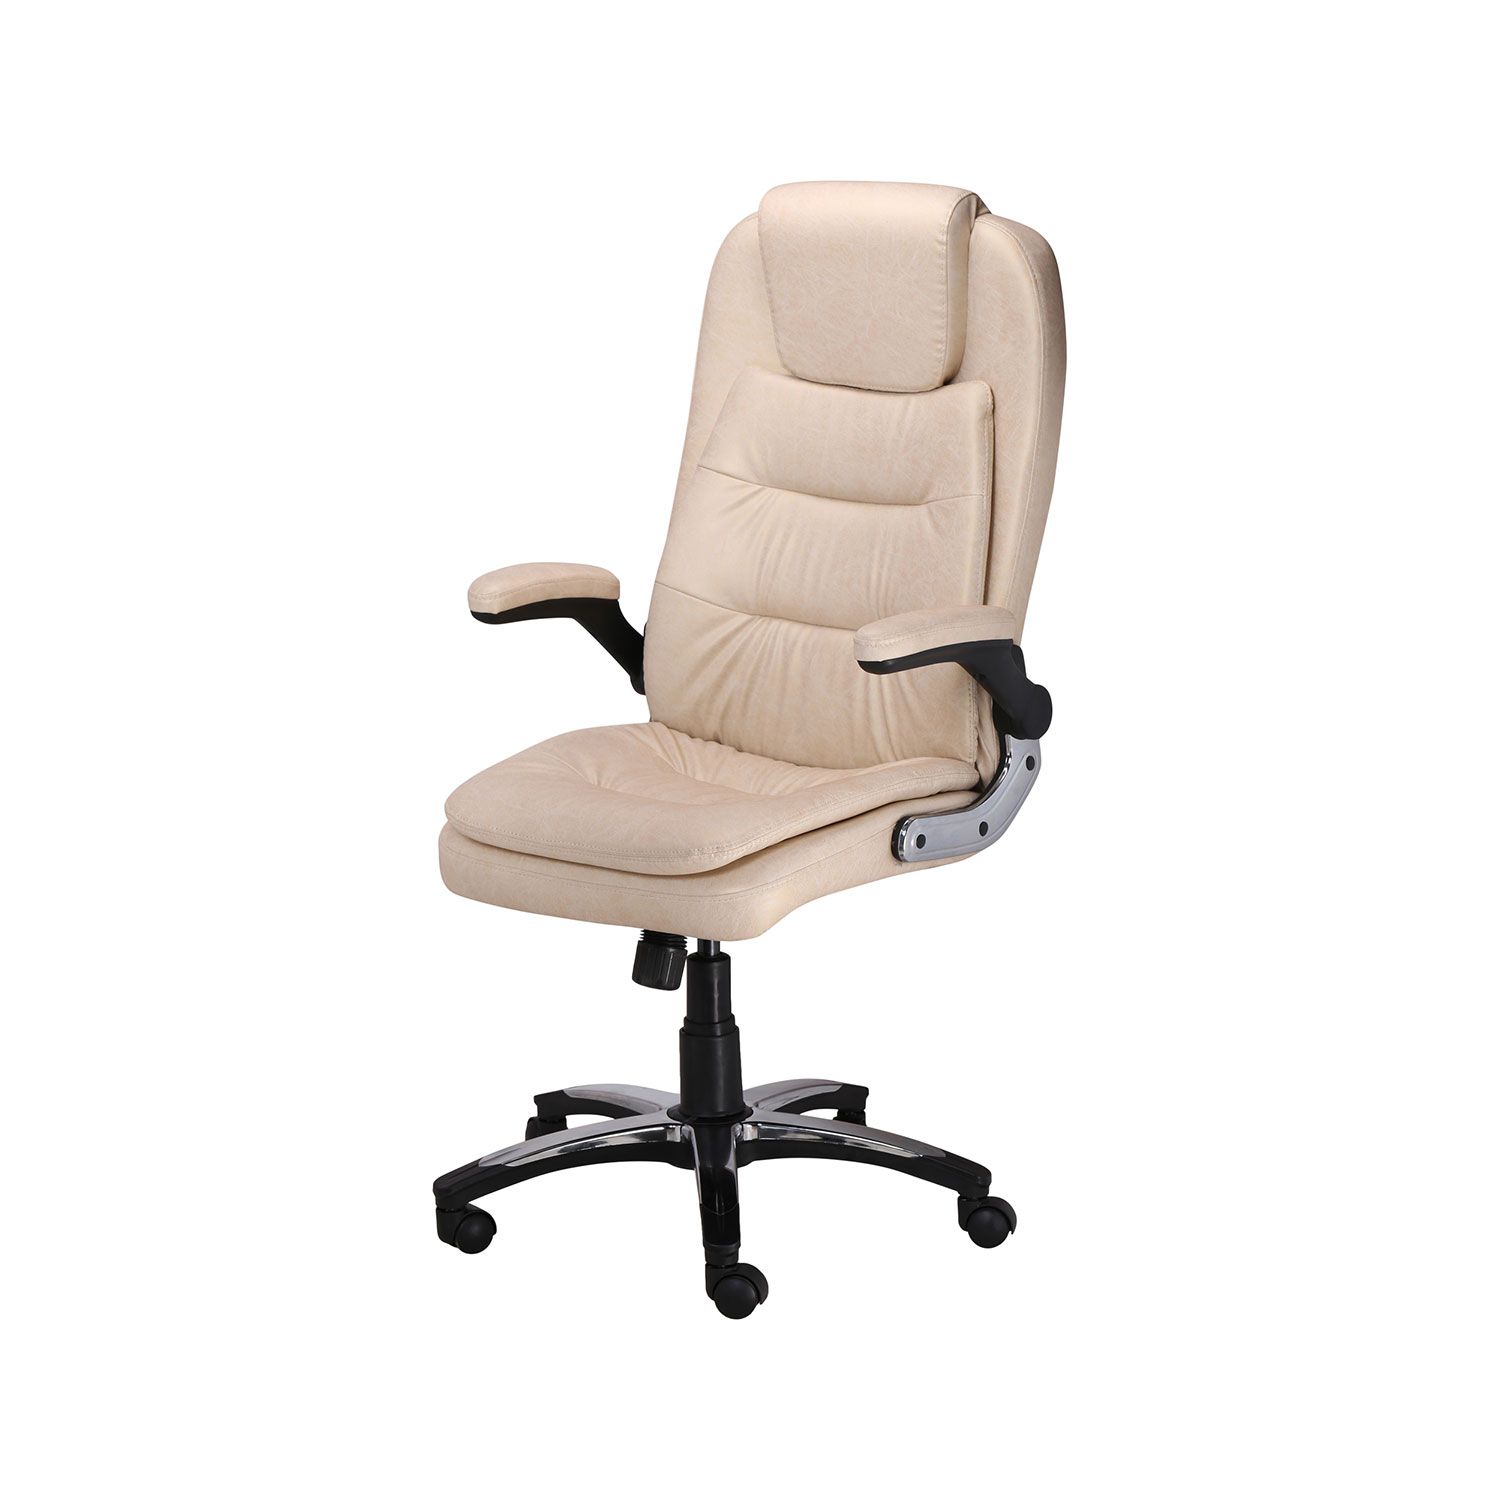 Cream Chairs The Largas Executive High Back Chair In Designer Cream